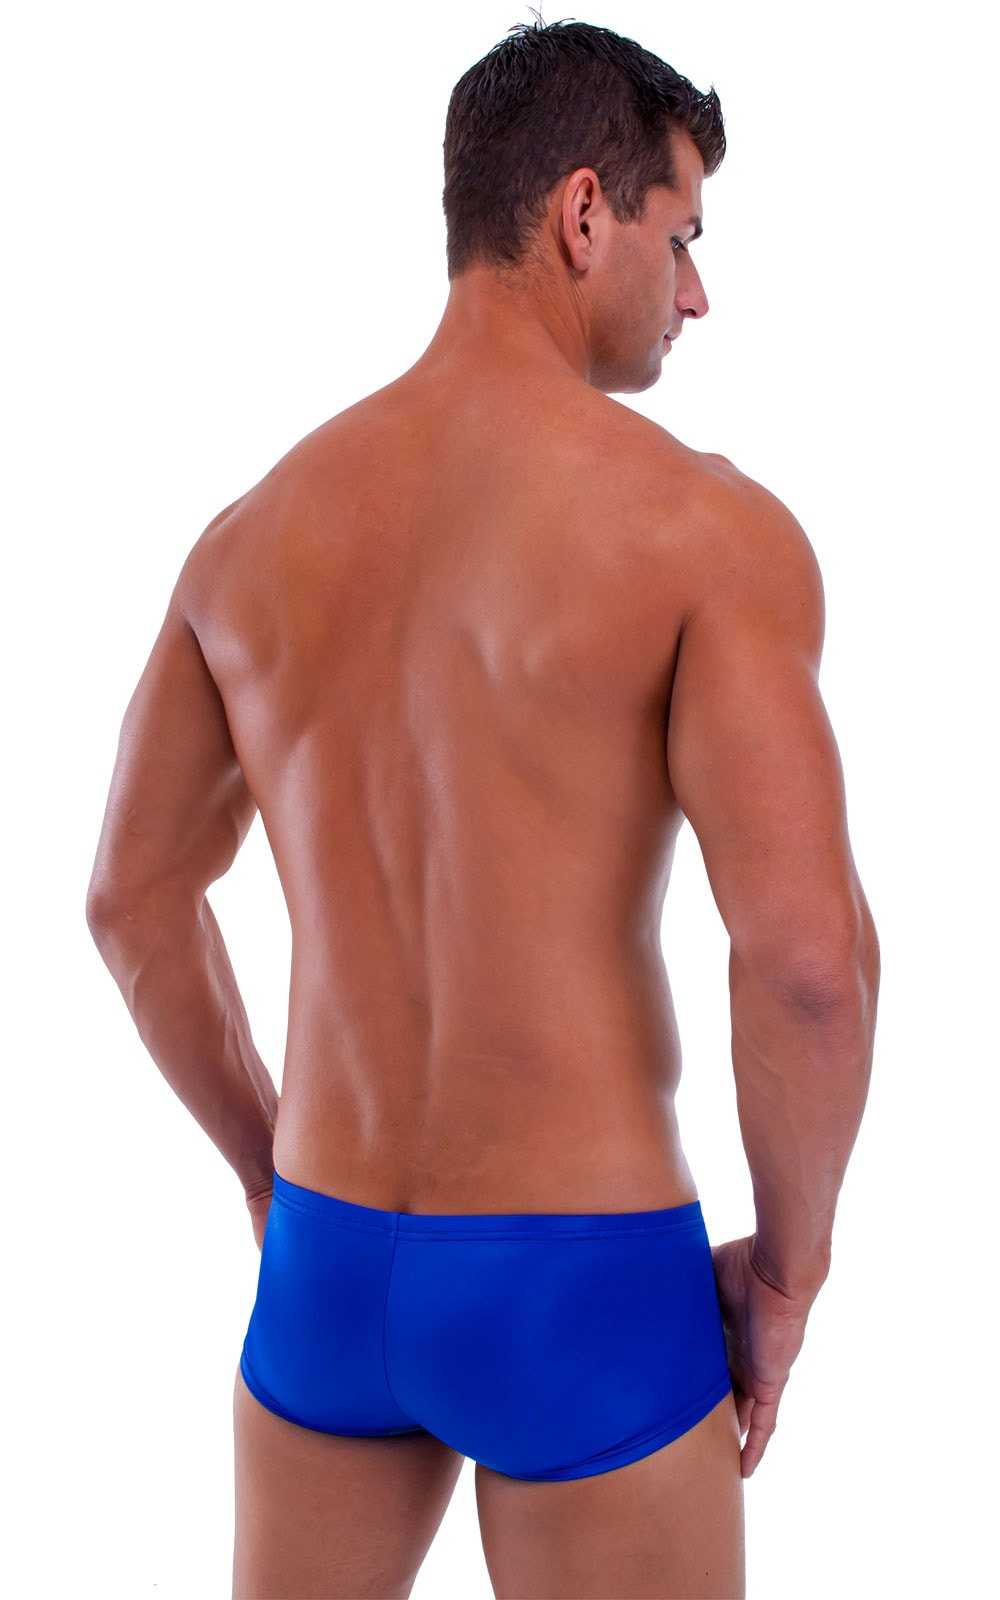 Extreme Low Square Cut Swim Trunks in Wet Look Royal Blue 3